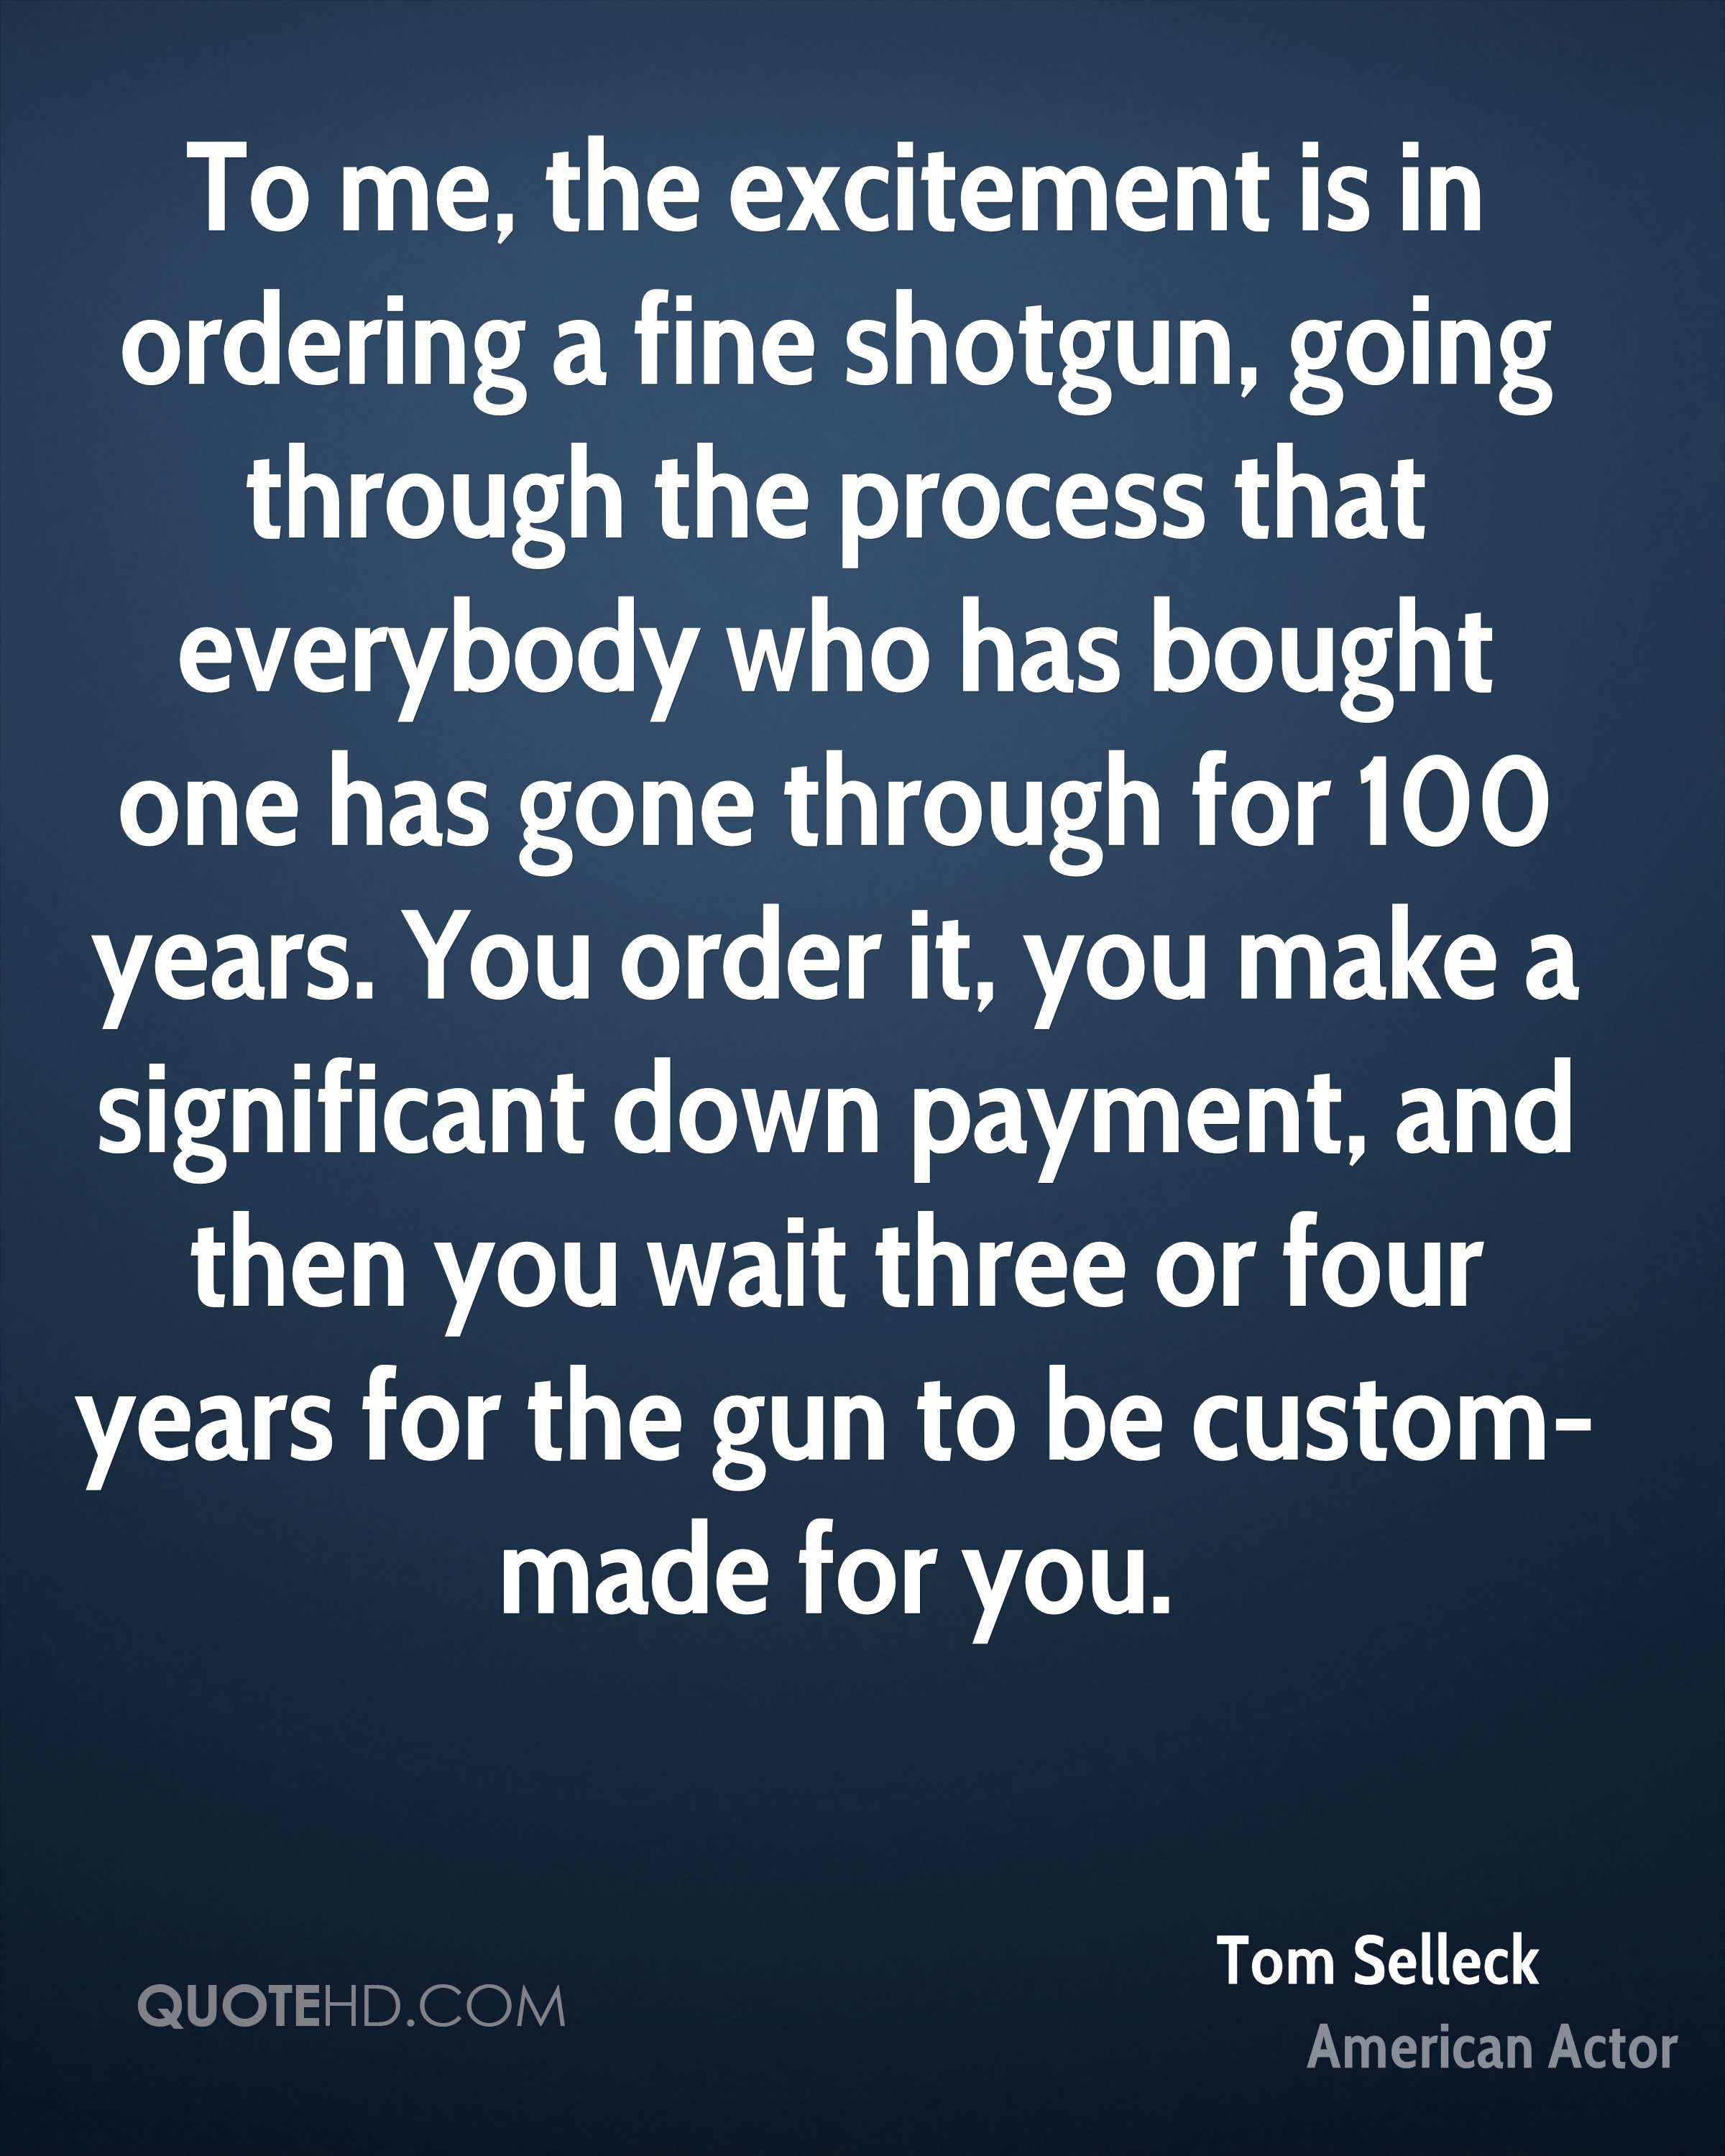 To me, the excitement is in ordering a fine shotgun, going through the process that everybody who has bought one has gone through for 100 years. You order it, you make a significant down payment, and then you wait three or four years for the gun to be custom-made for you.